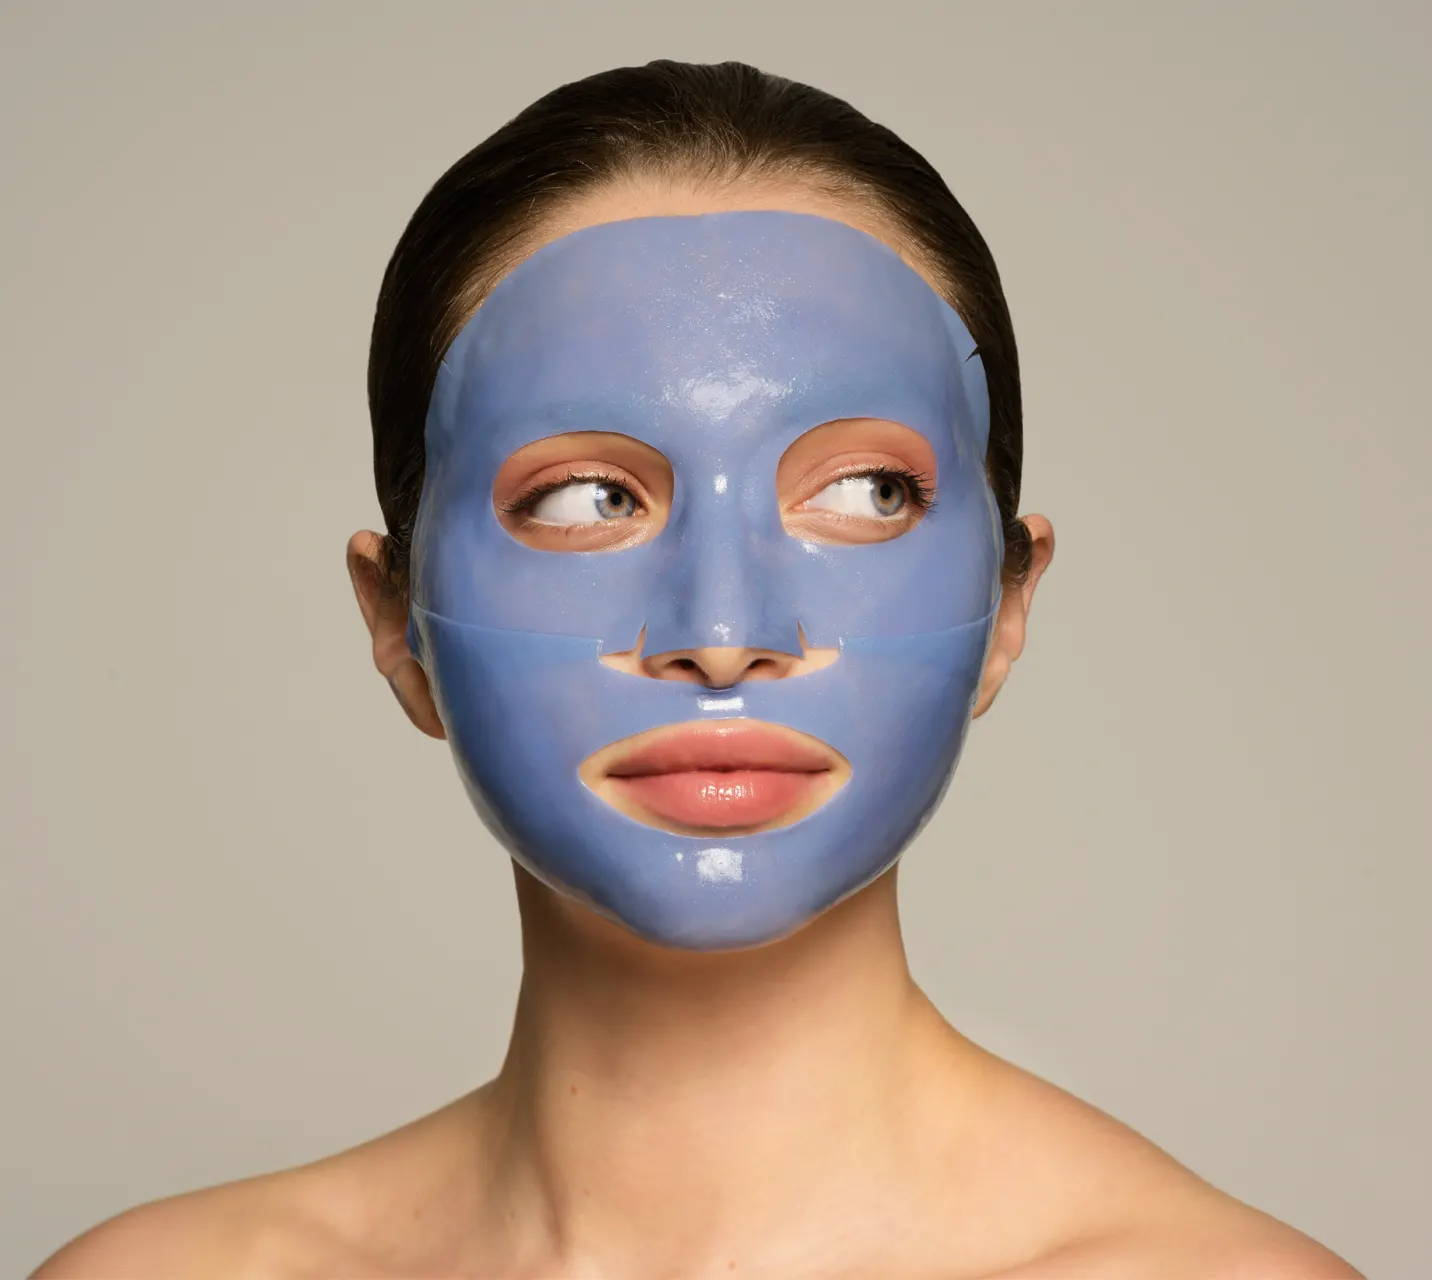 sub-zero de-puffing face mask from 111SKIN